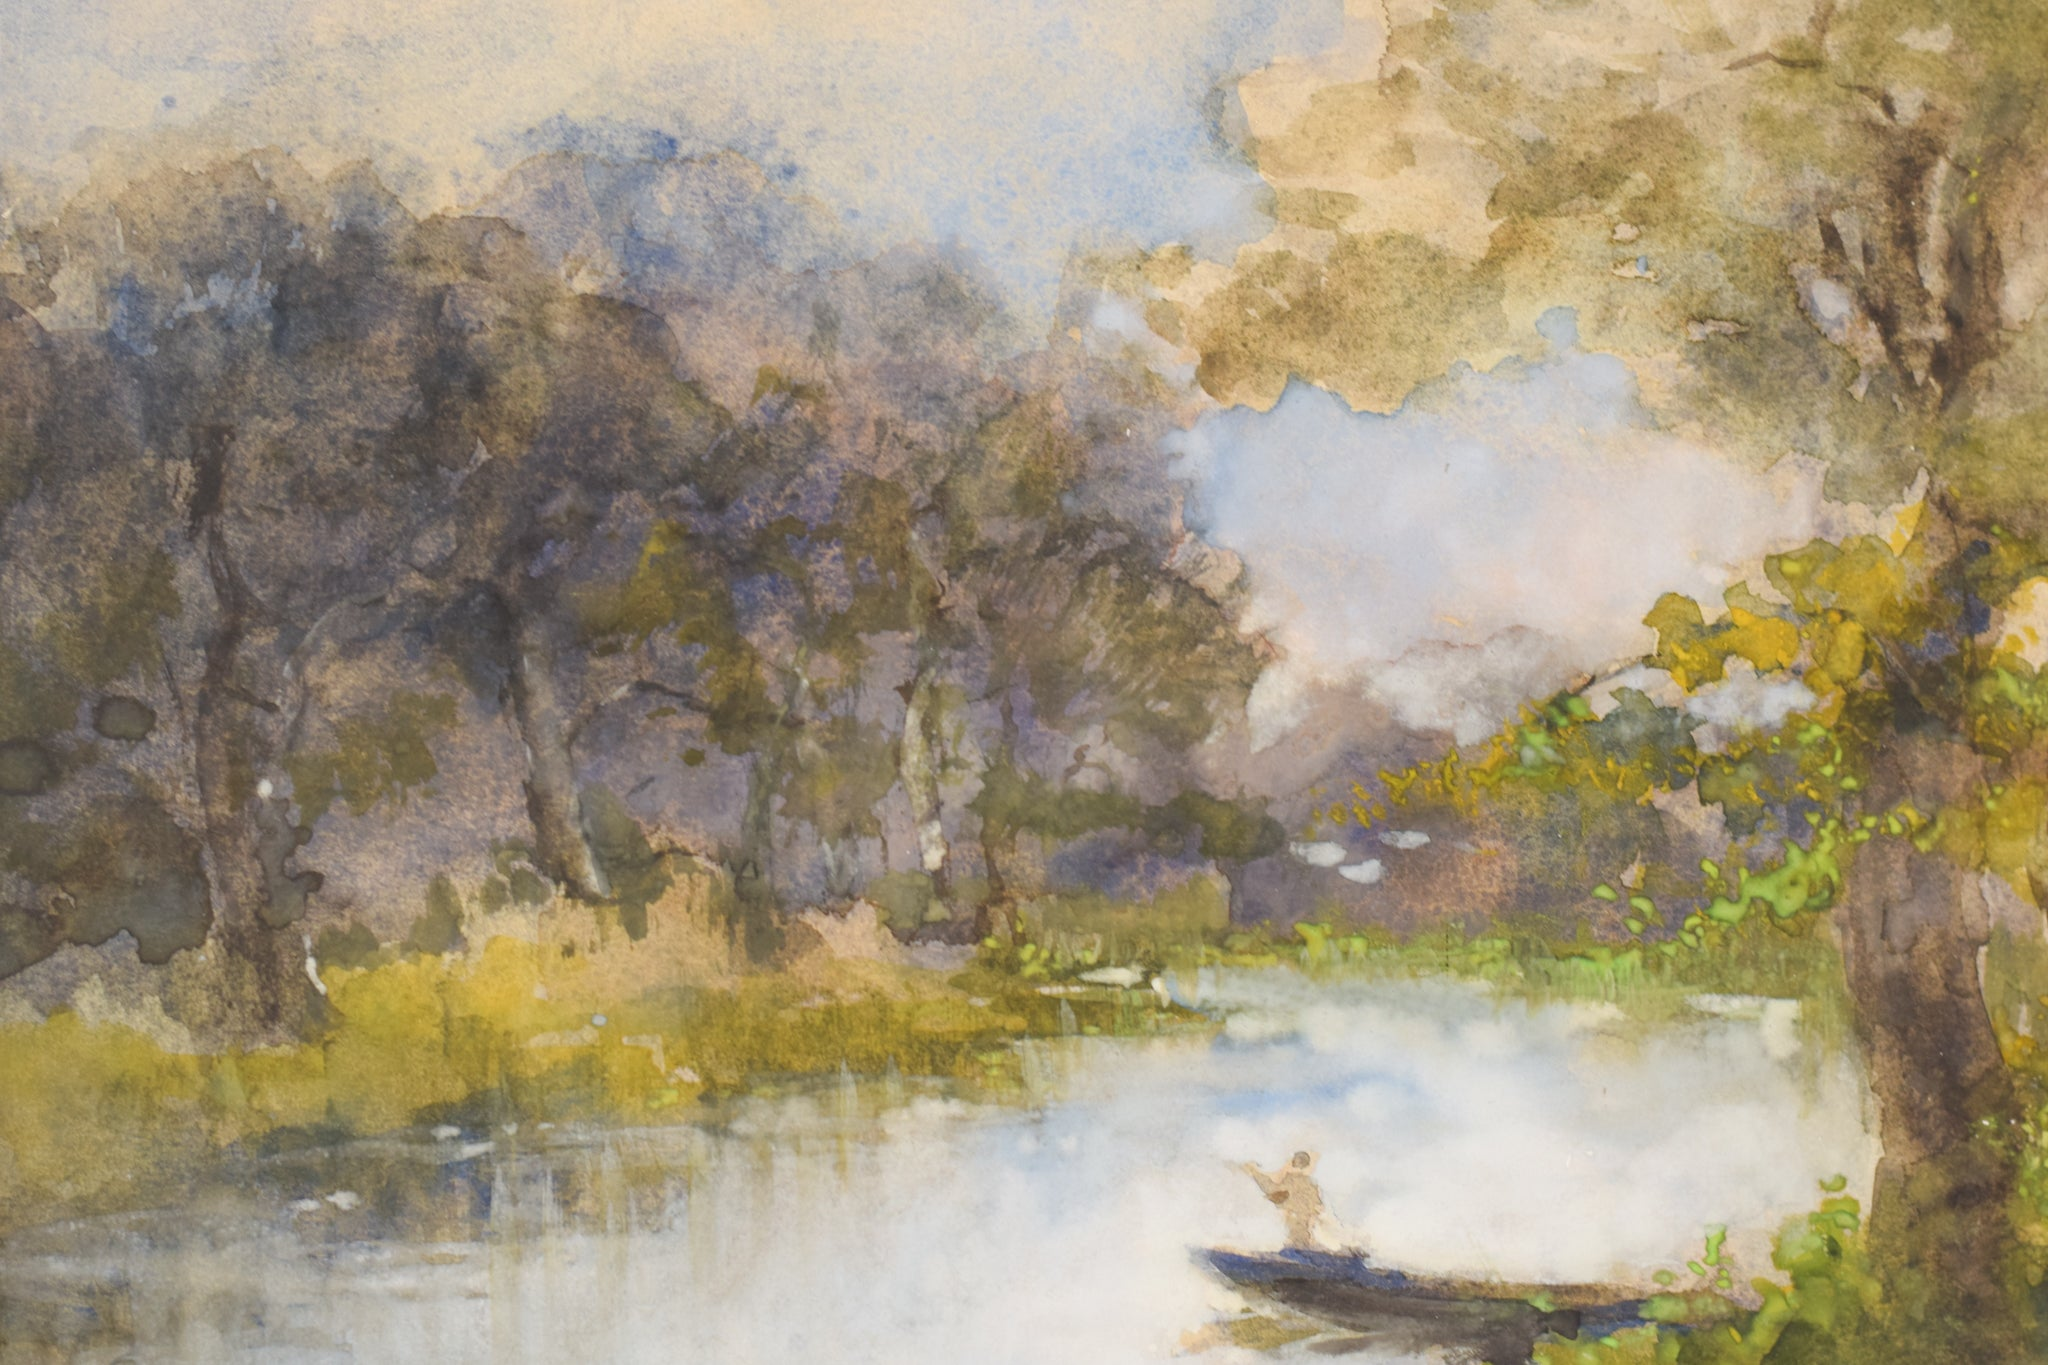 'The Boat on the River' Watercolour Landscape by Pompeo Mariani_Detail